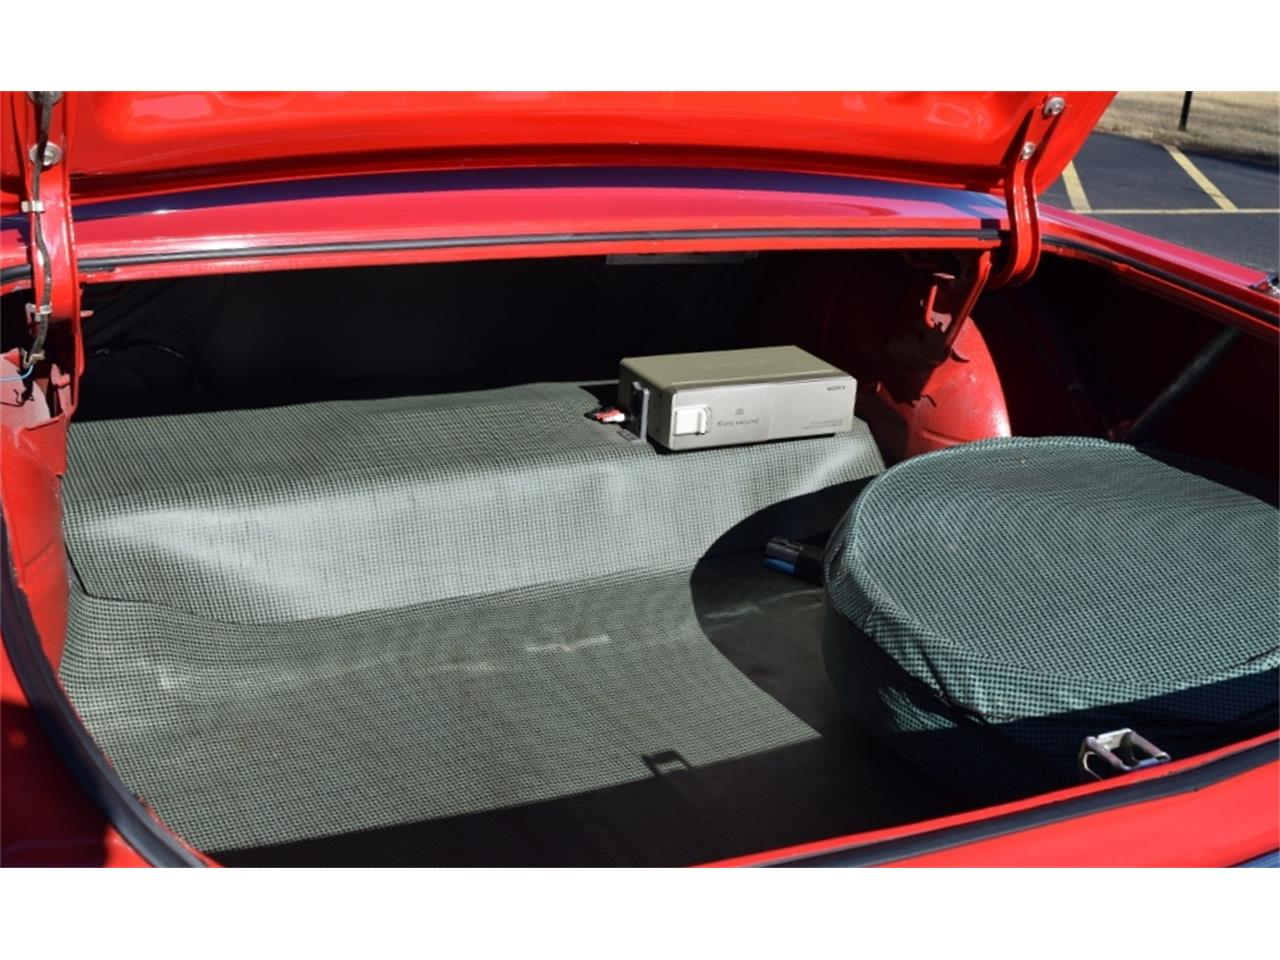 Large Picture of 1965 Pontiac GTO located in Fredericksburg Virginia - $57,900.00 Offered by Classic Car Center - MSVJ